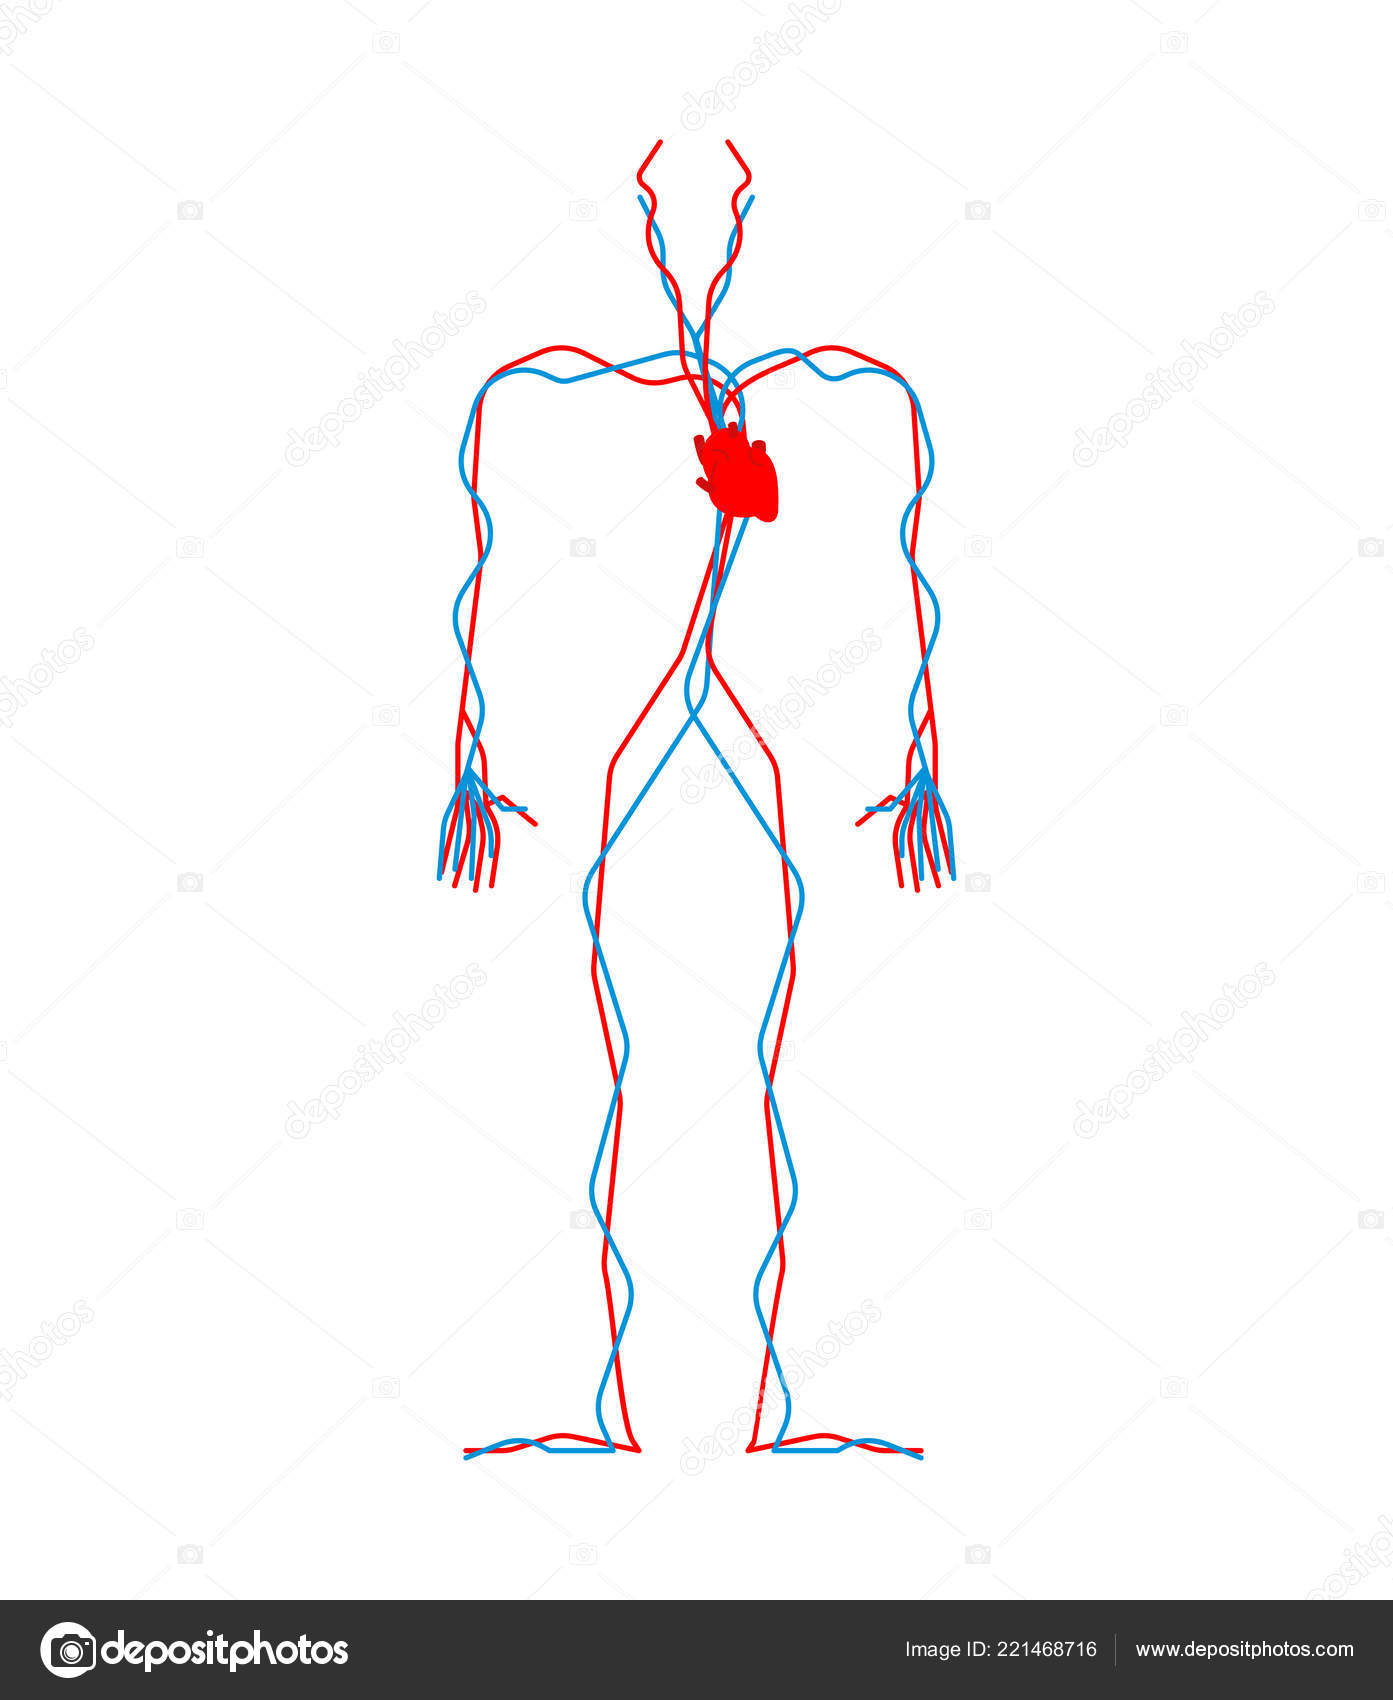 Circulatory System Heart Blood Vessels Aorta Artery Human Anatomy